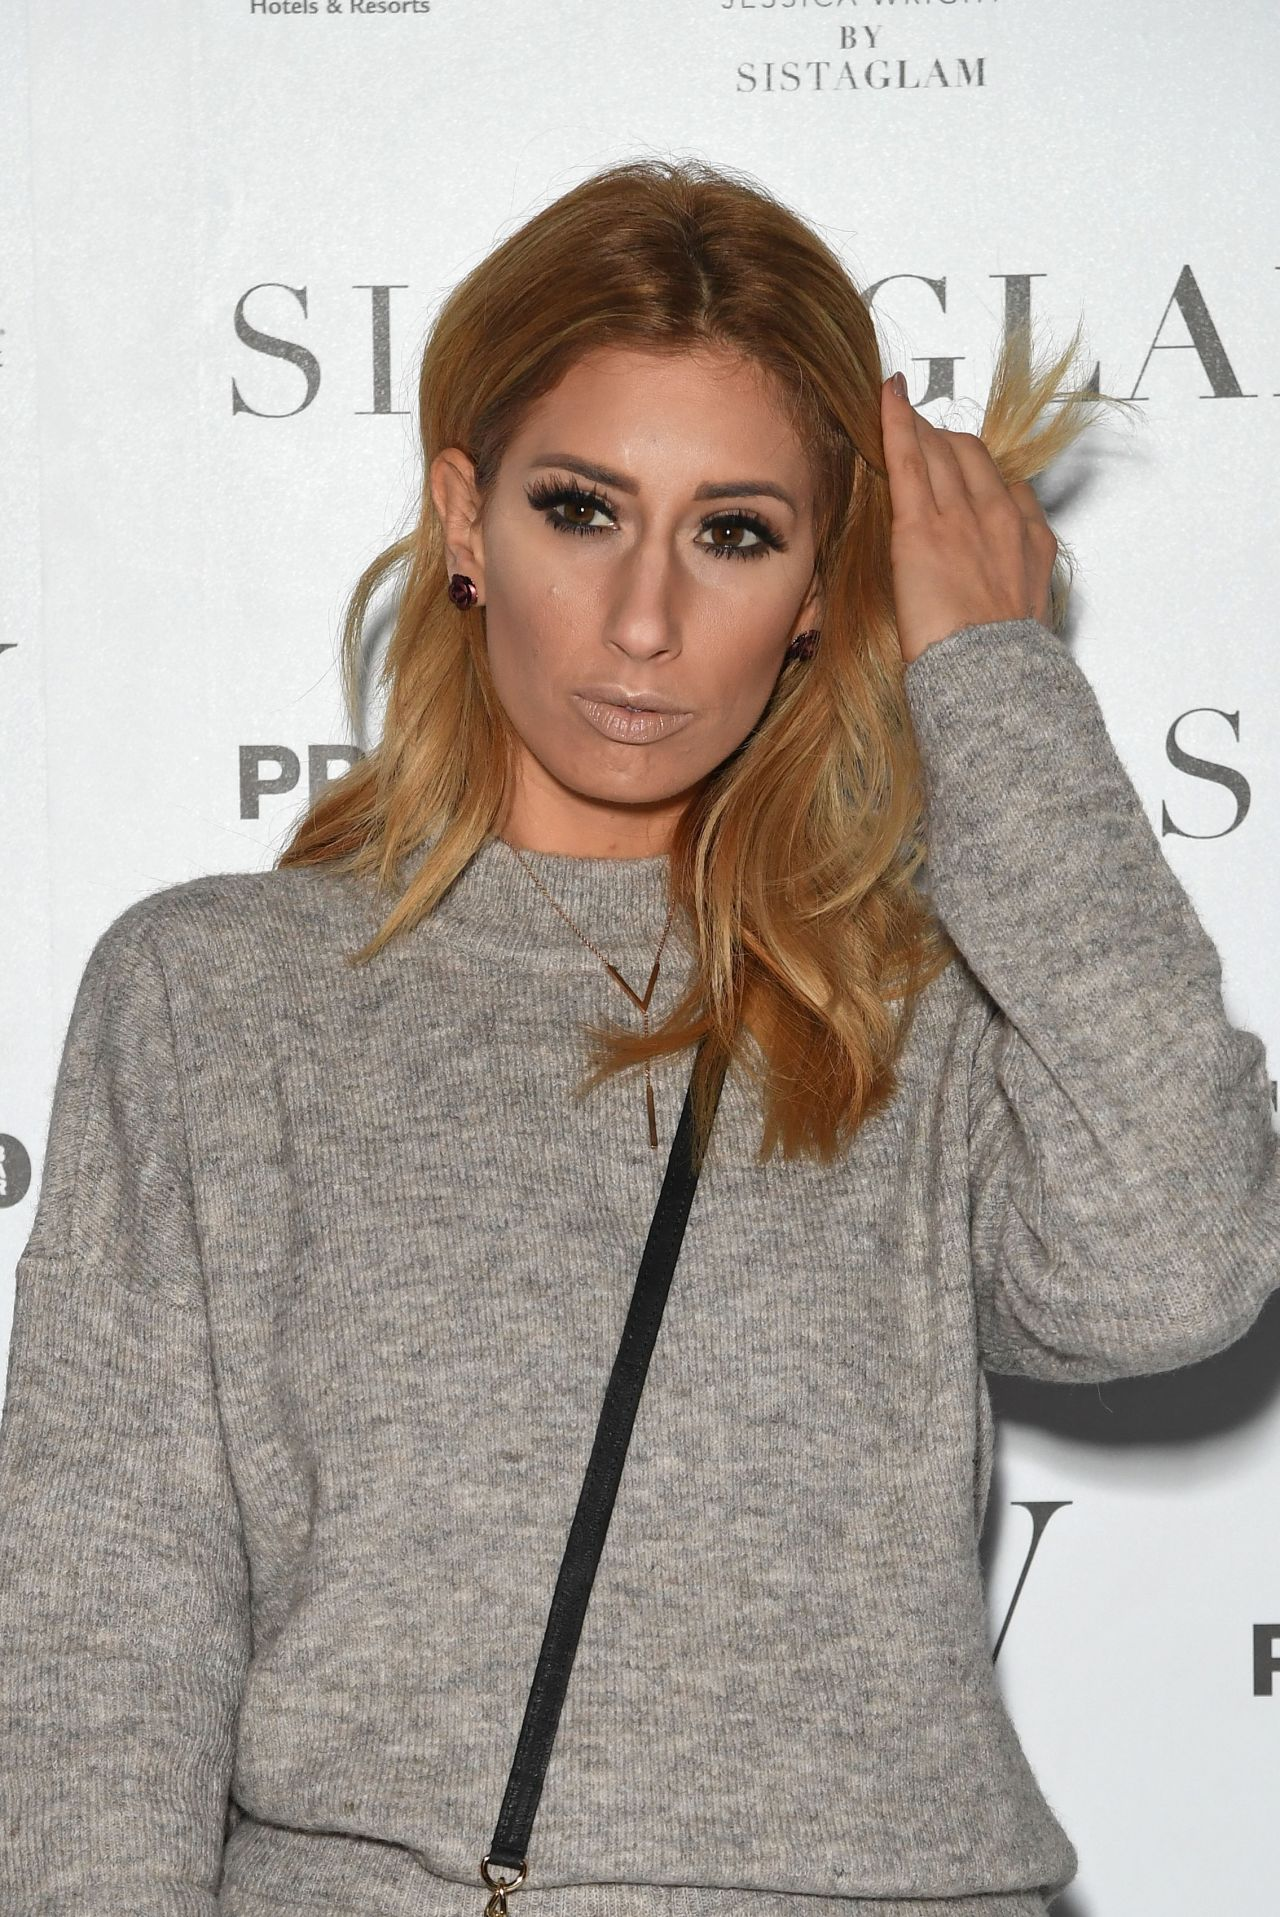 stacey solomon - photo #2